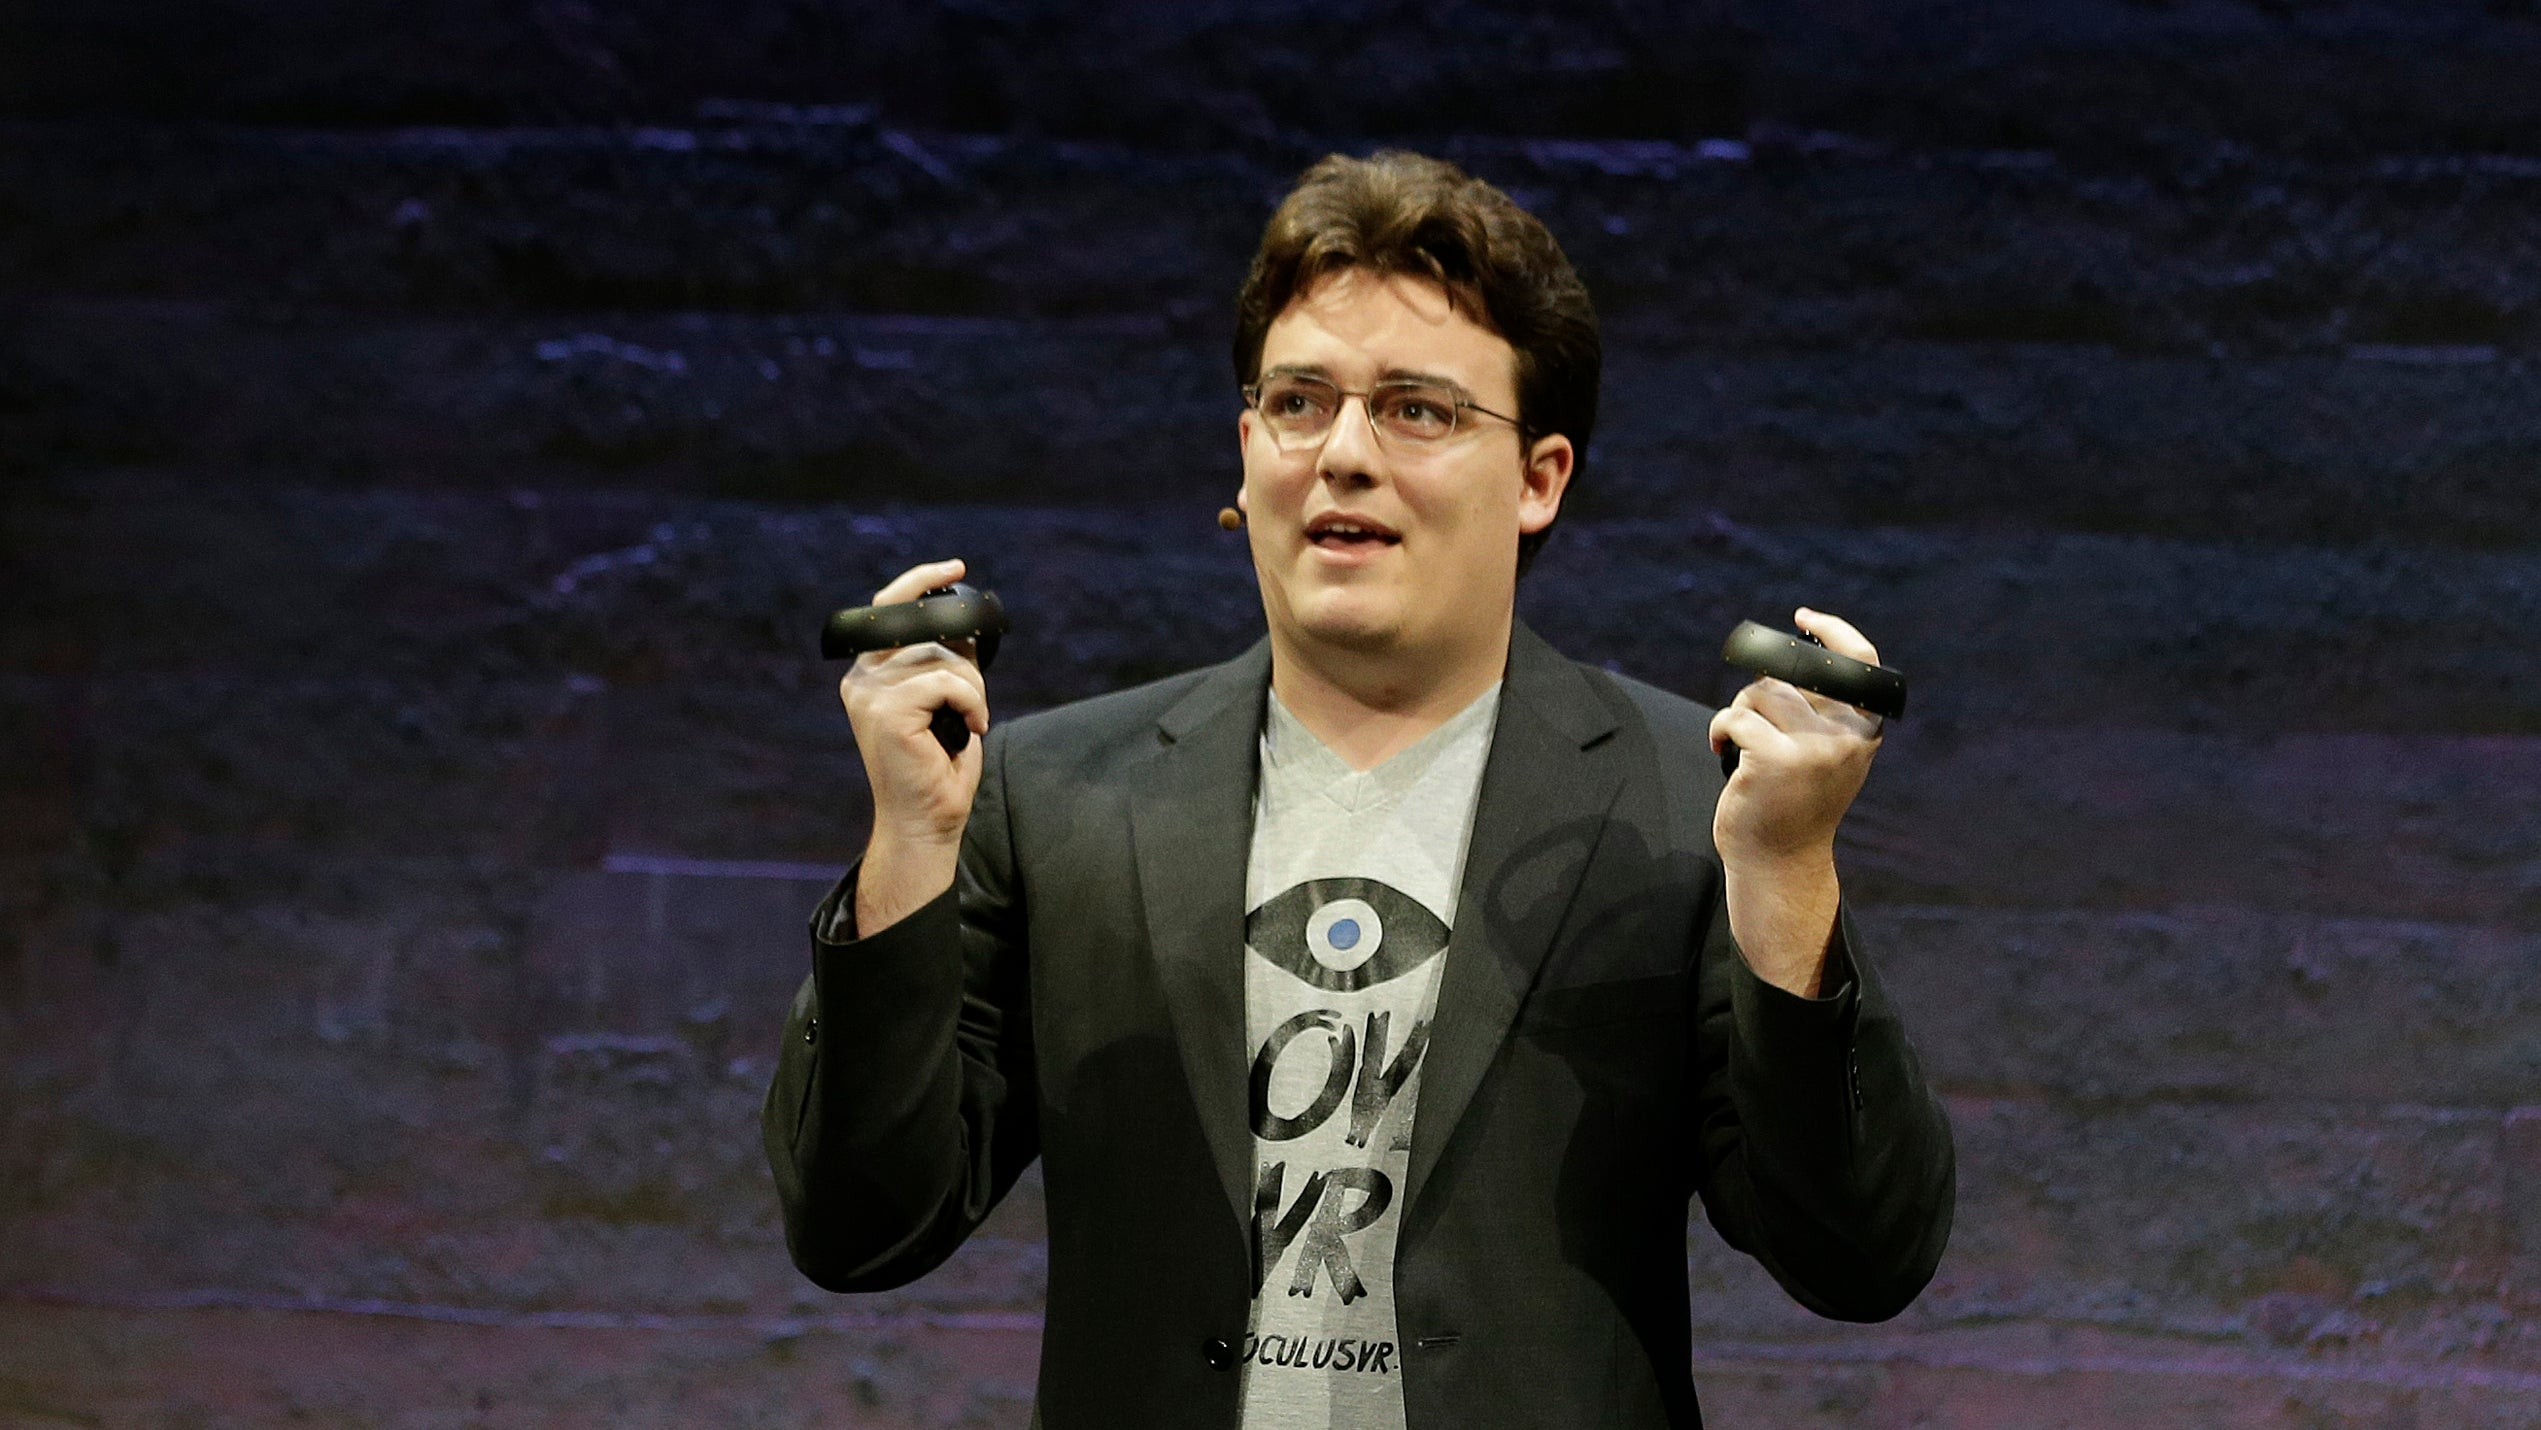 Palmer Luckey's new company deals in defence technology